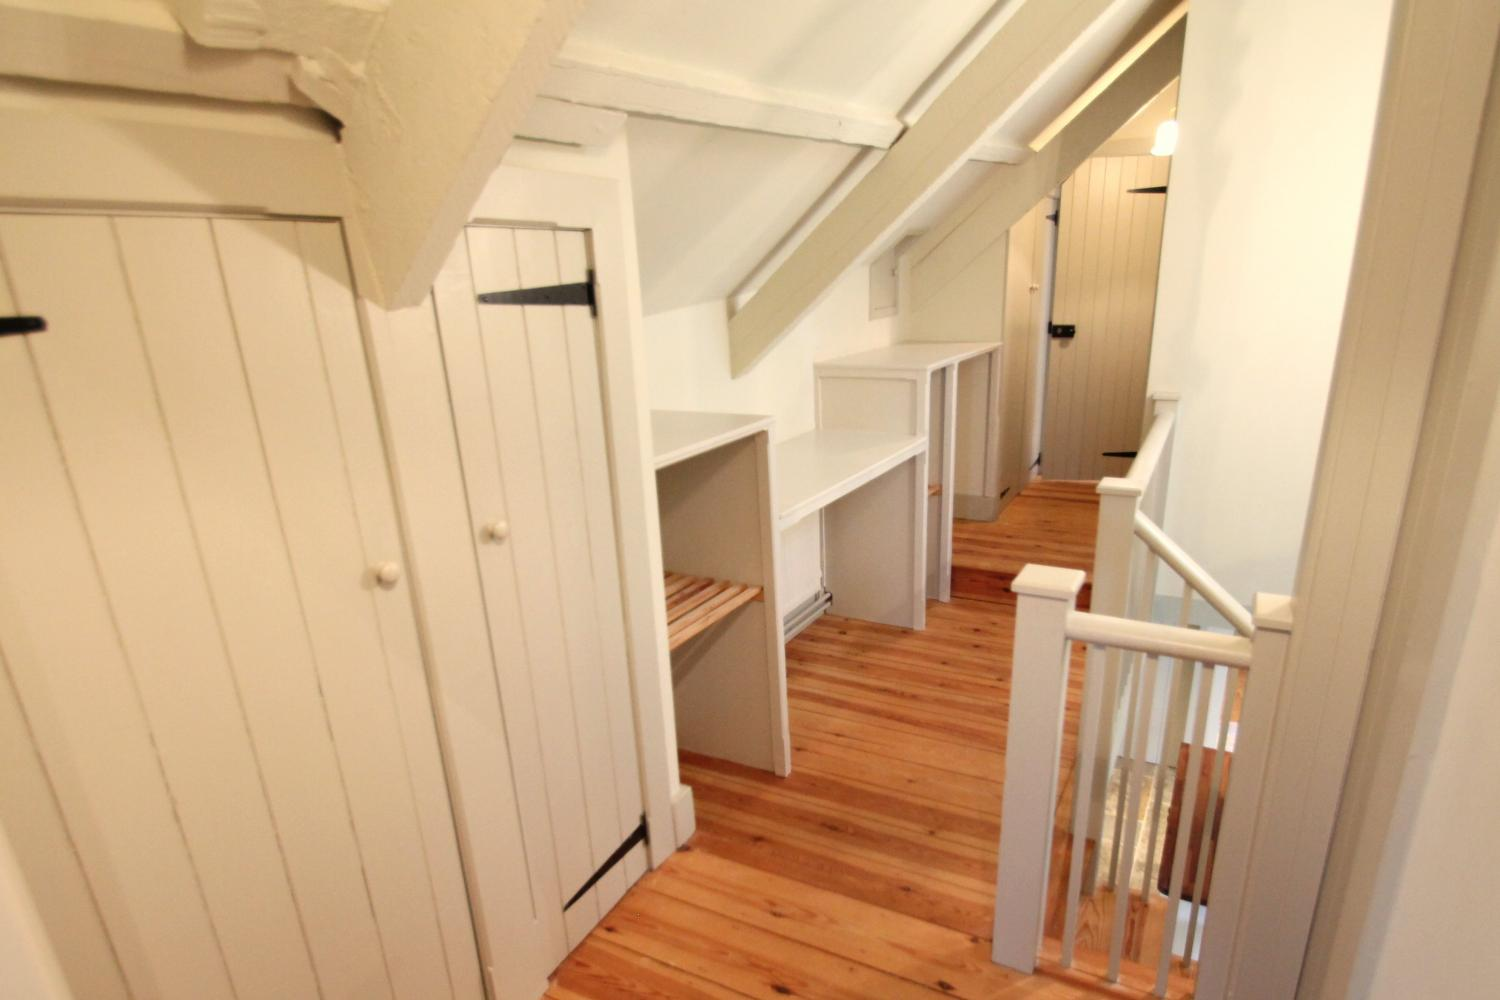 There is plenty of extra storage on the landing should you need it.